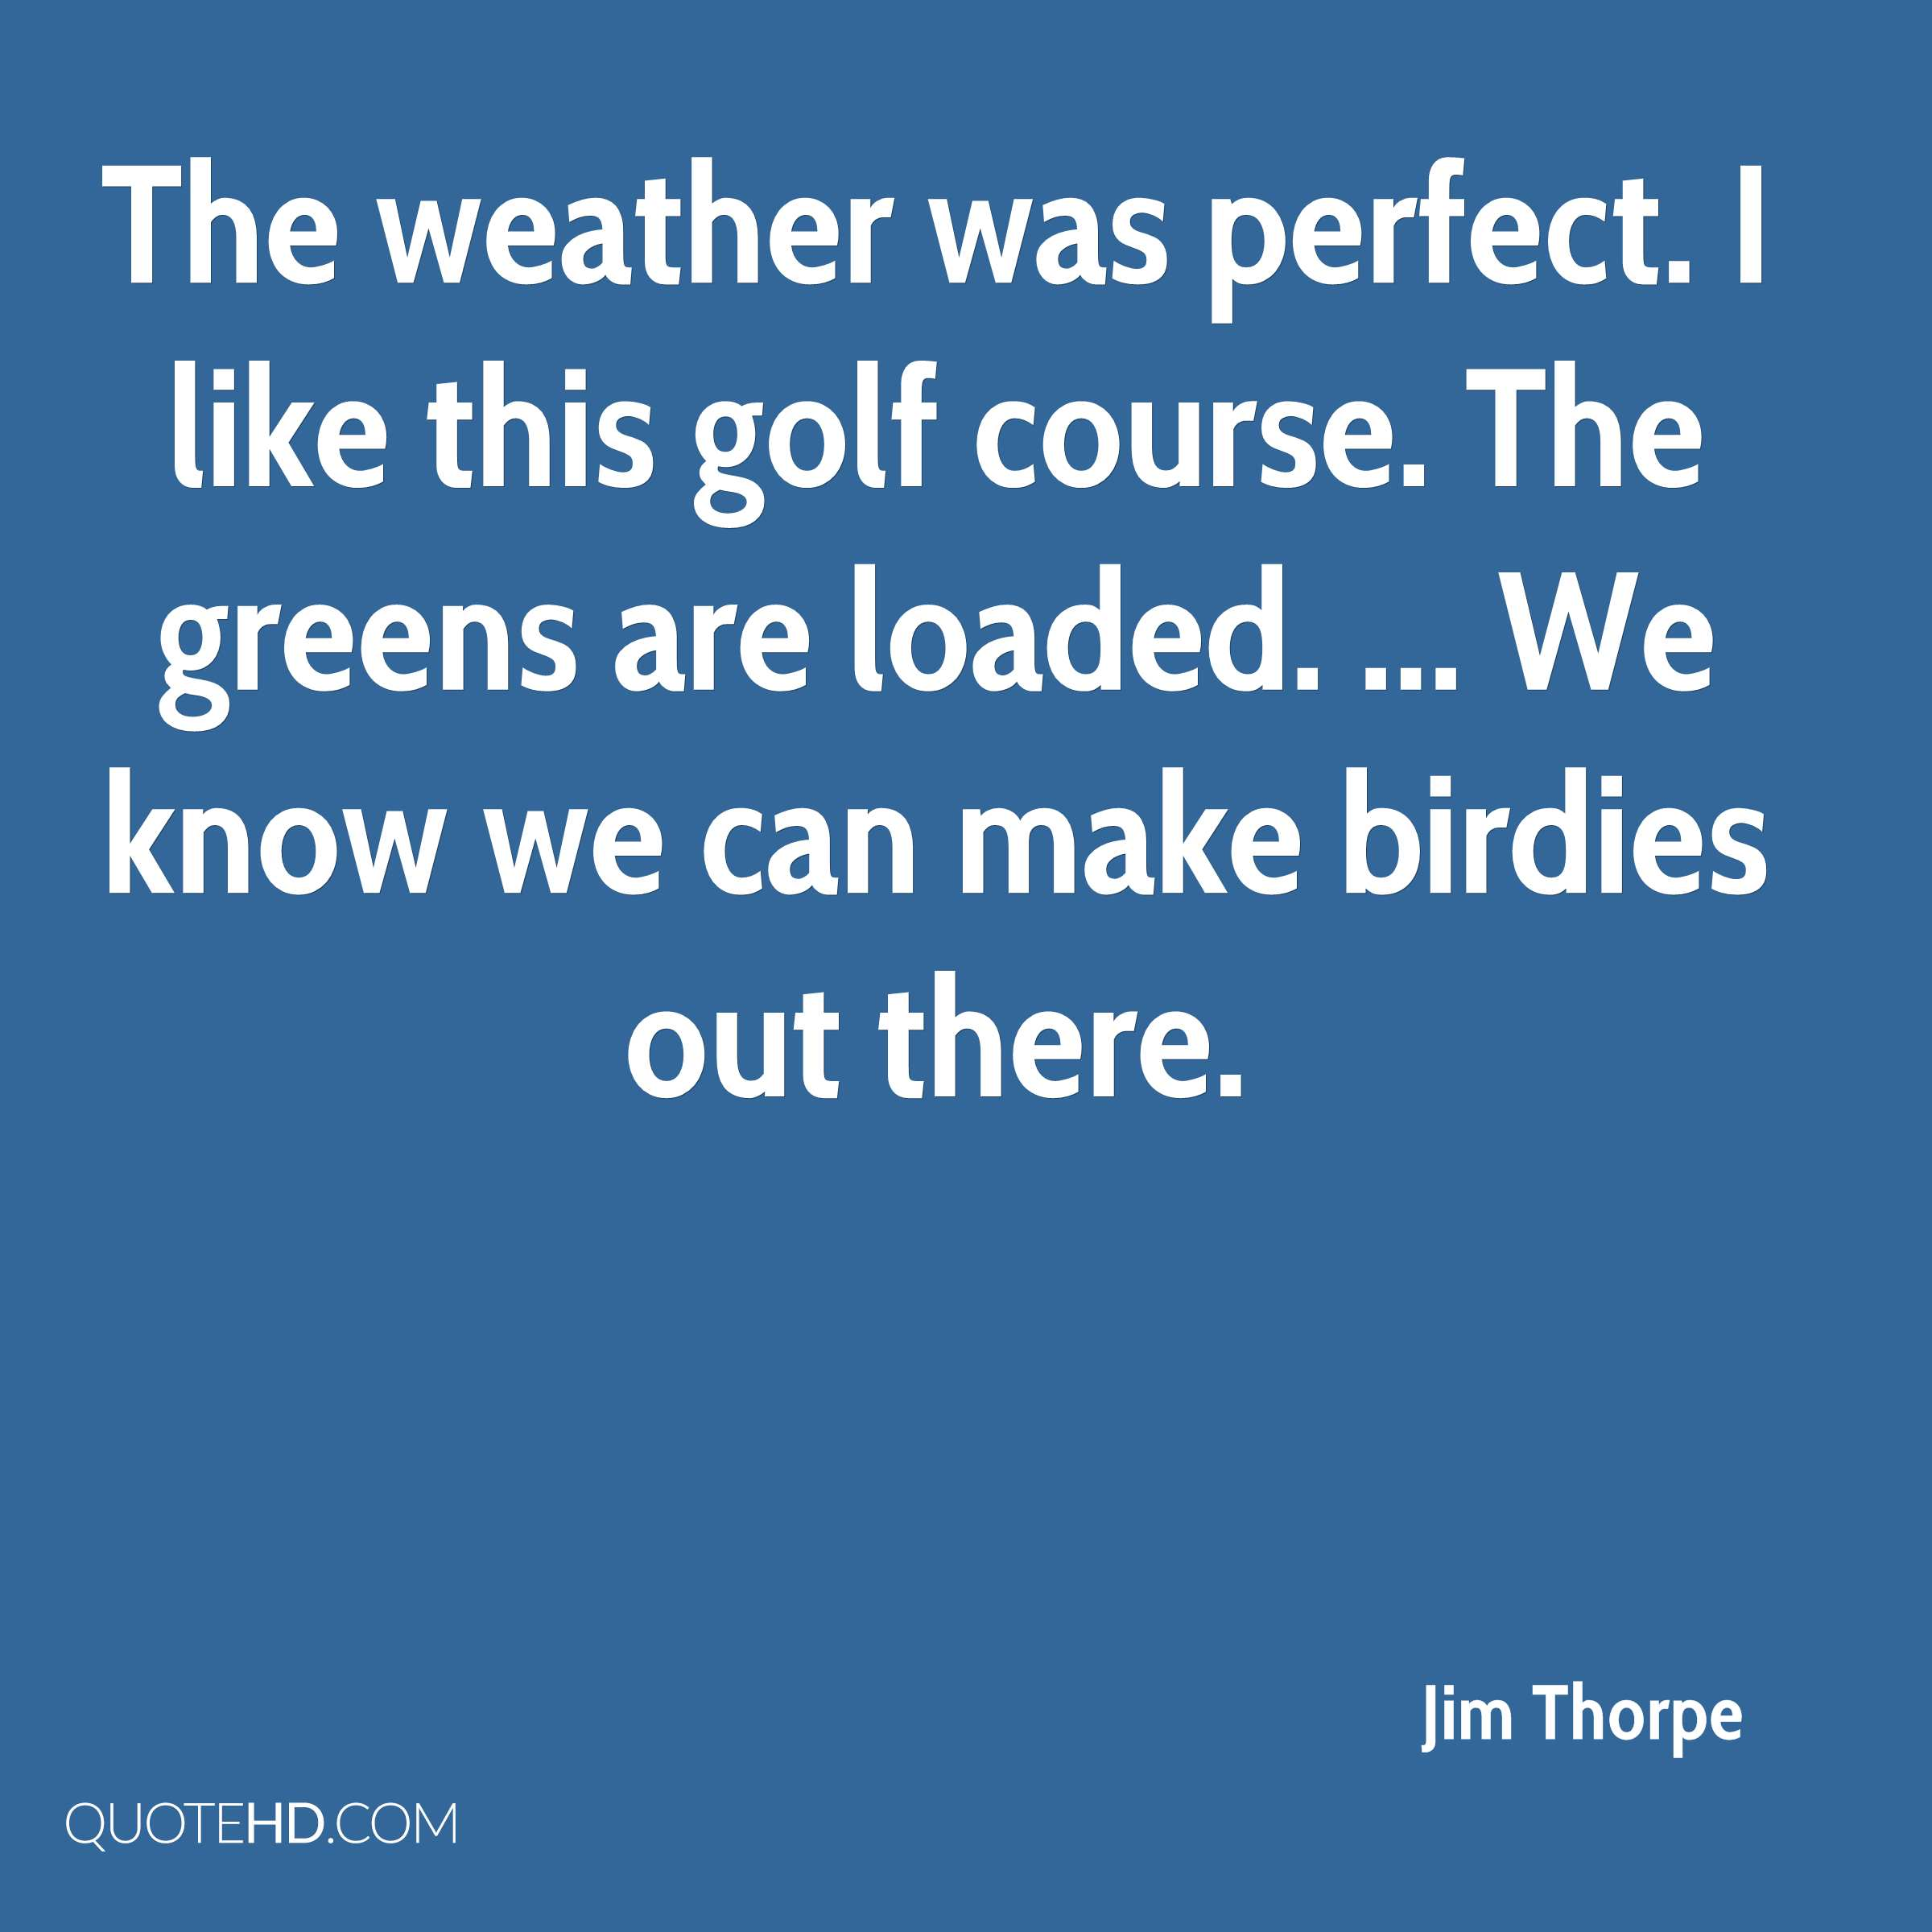 The weather was perfect. I like this golf course. The greens are loaded. ... We know we can make birdies out there.